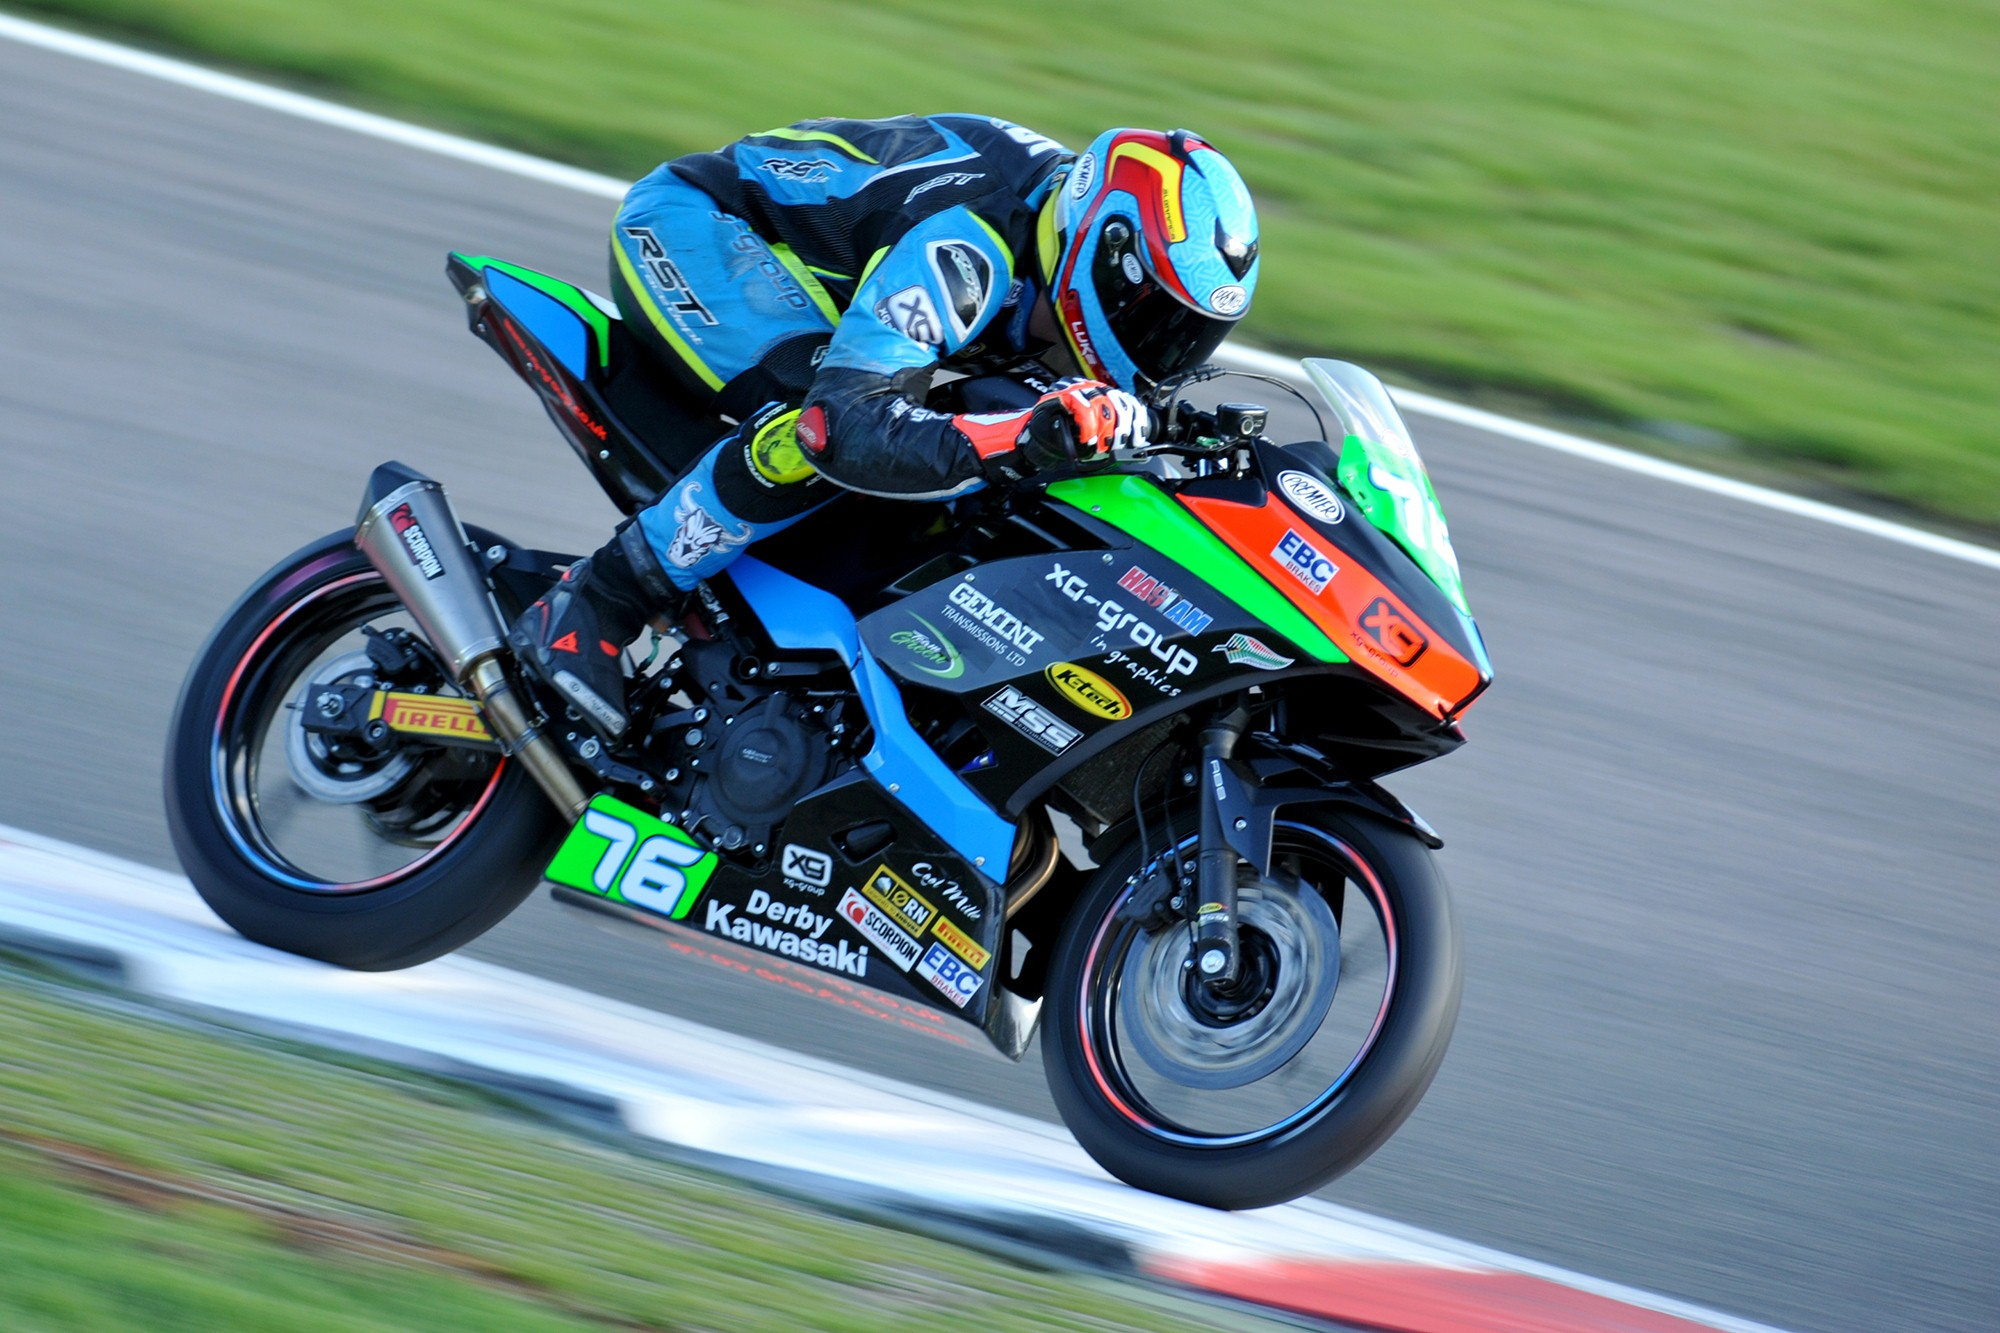 Double DNF at Brands Hatch Finale for Luke Verwey